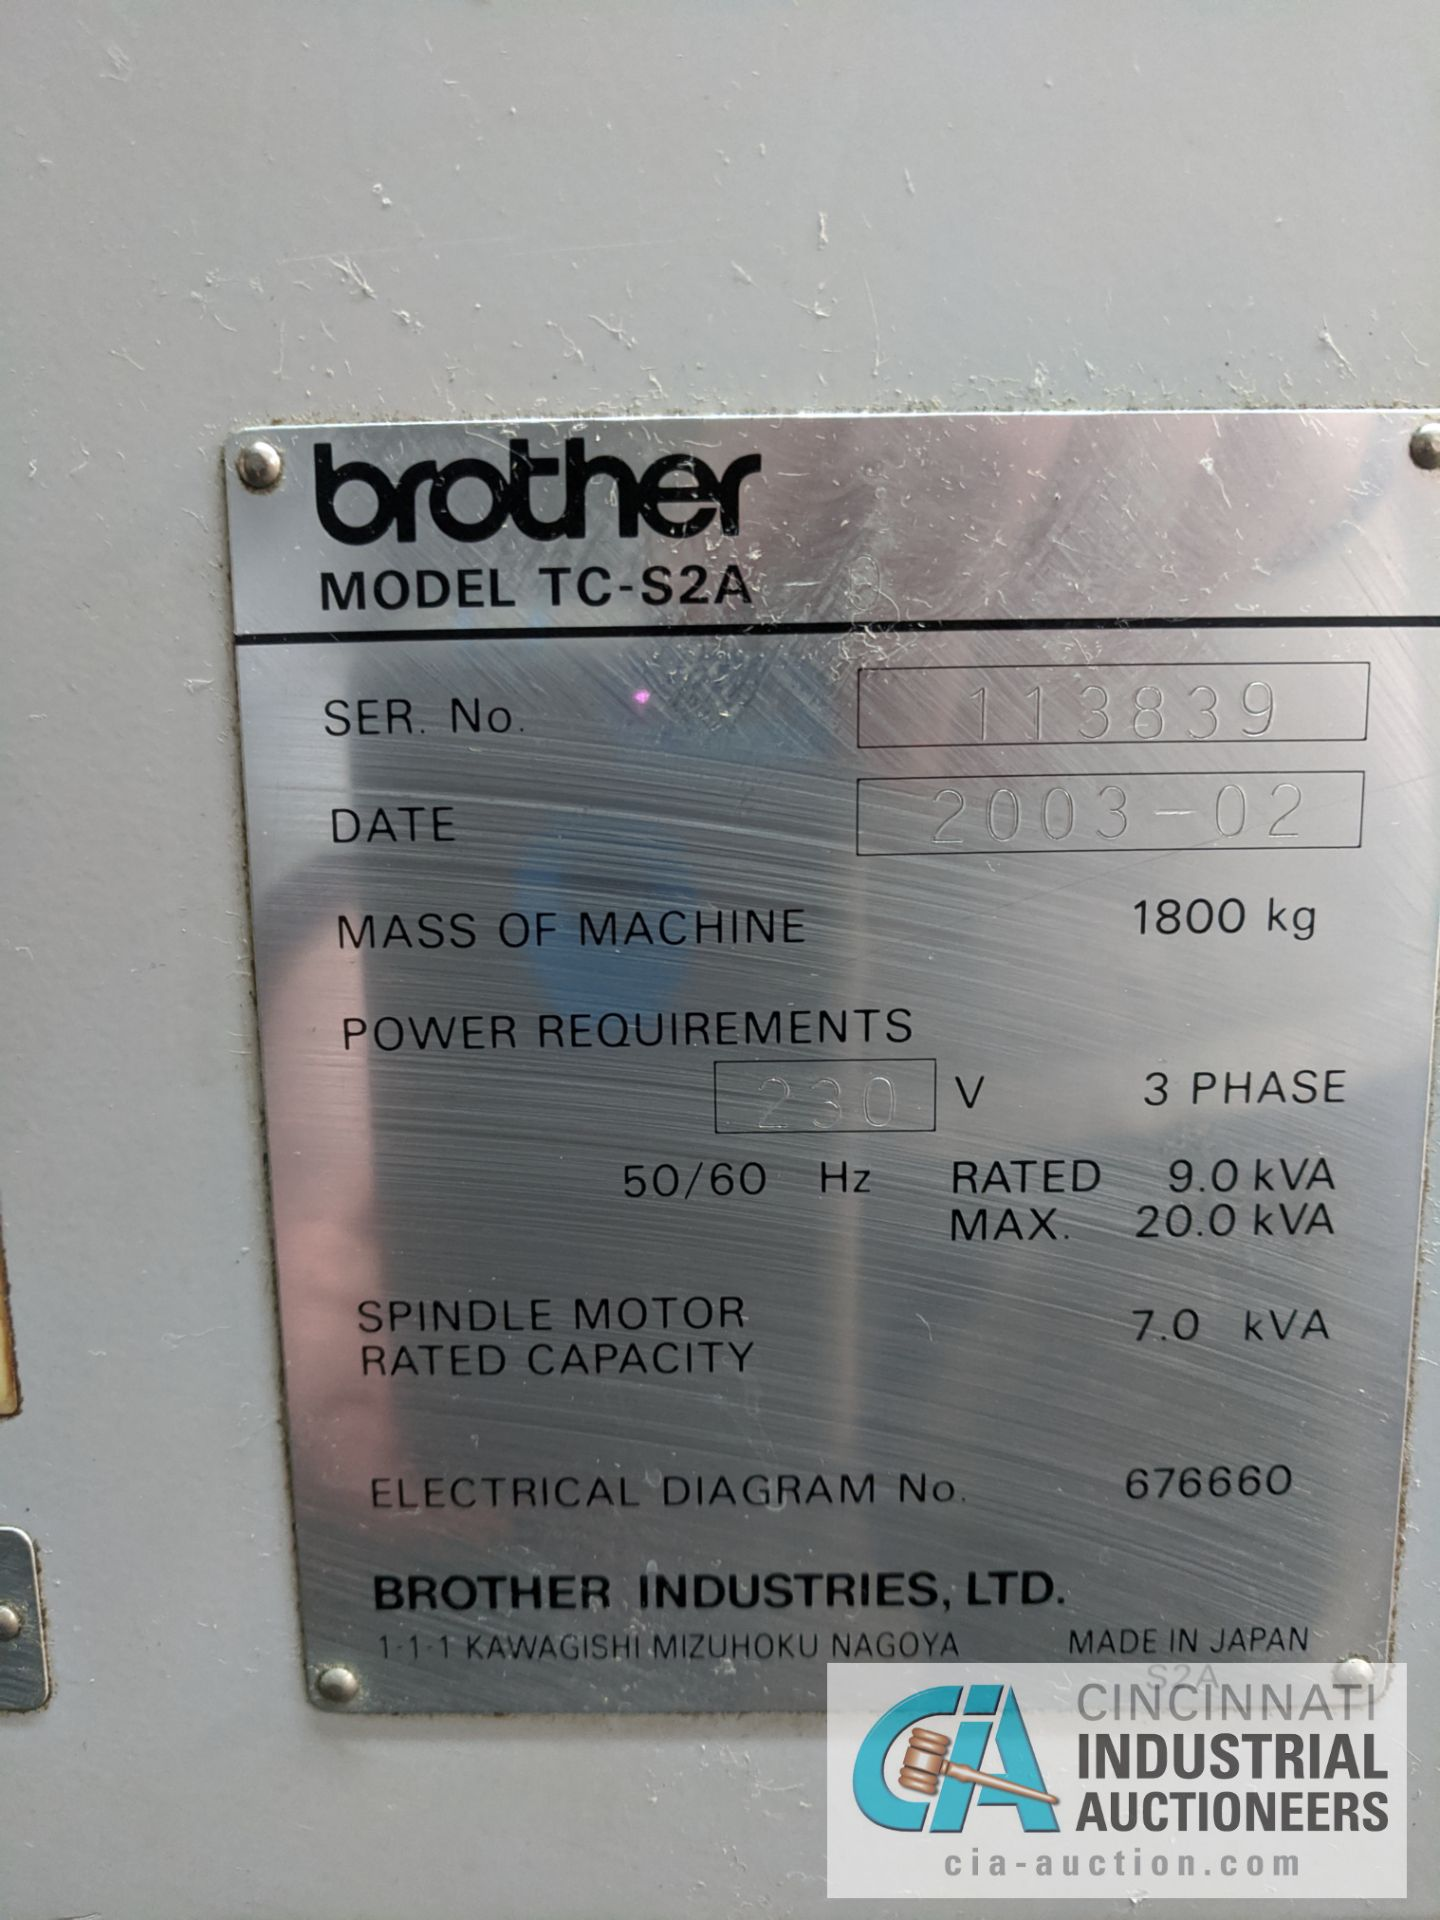 BROTHER MODEL TC-S2A-O CNC DRILL AND TAP MACHINE; S/N 113839 (NEW 2003) - Image 9 of 9